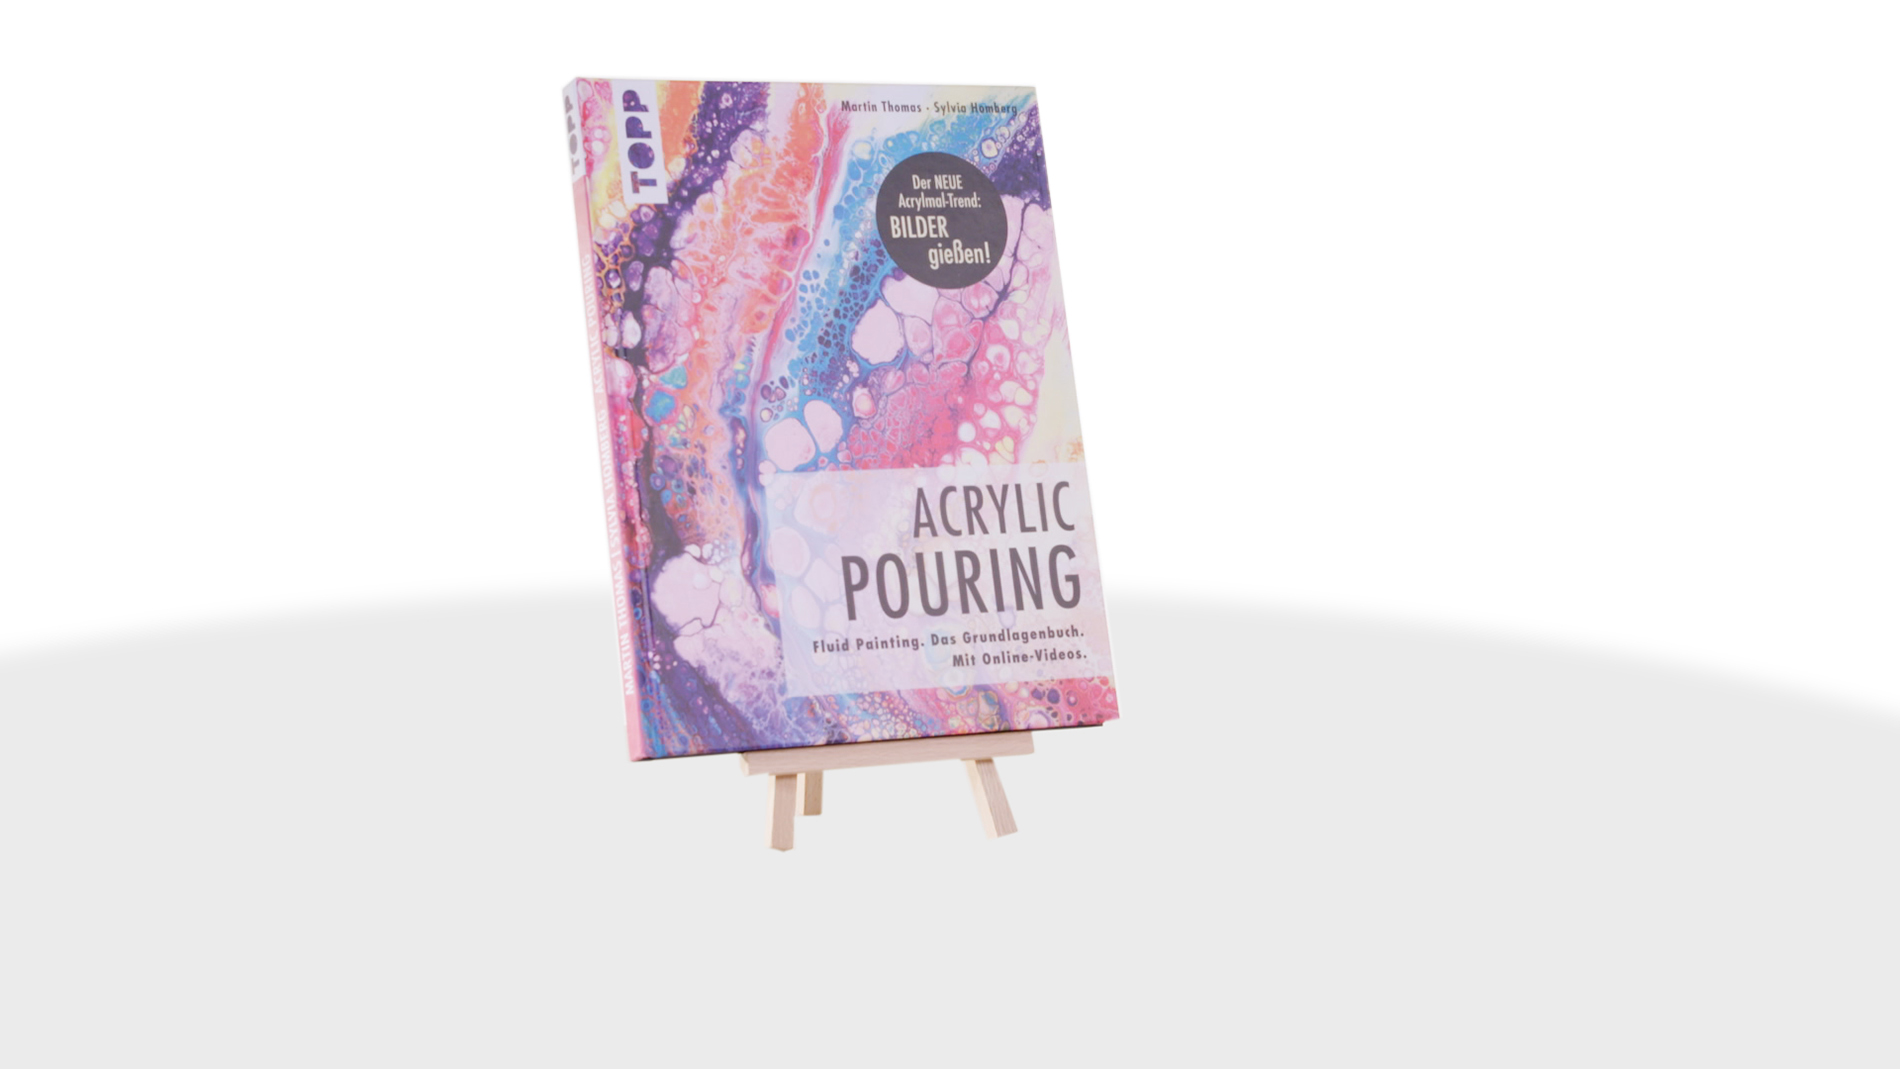 Creative Impulse Award 2nd place: frechverlag 'Acrylic Pouring'